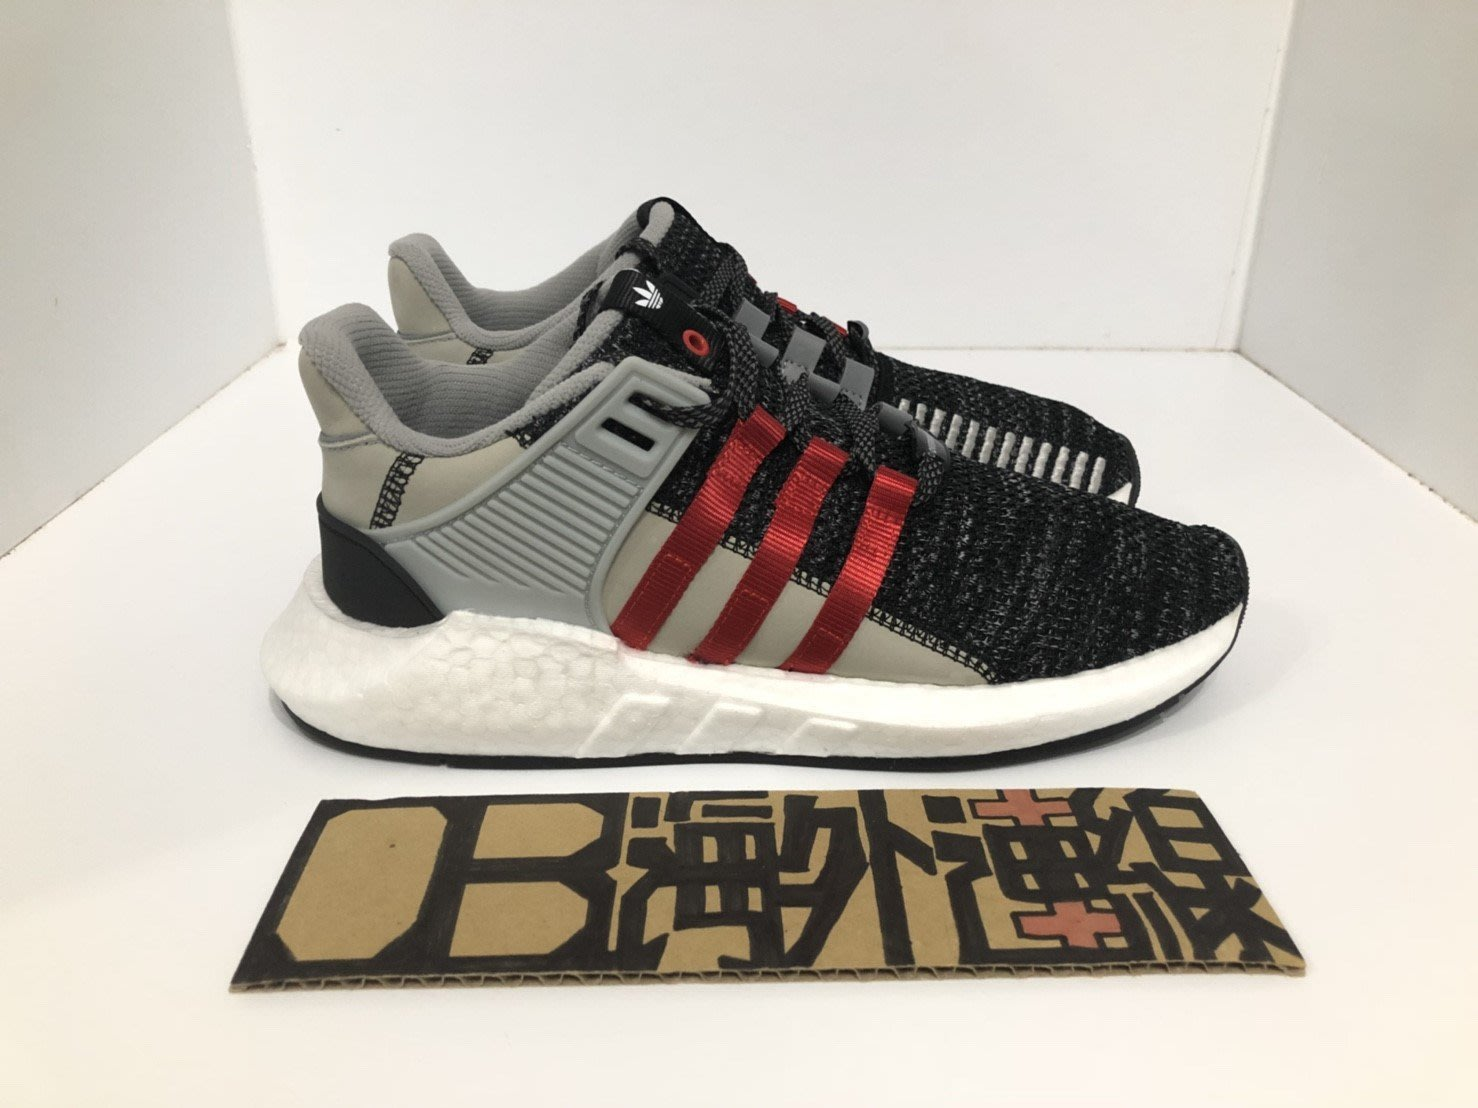 【OB海外連線】Overkill x Adidas EQT Support 93/17 BY2913 BOOST 特價中